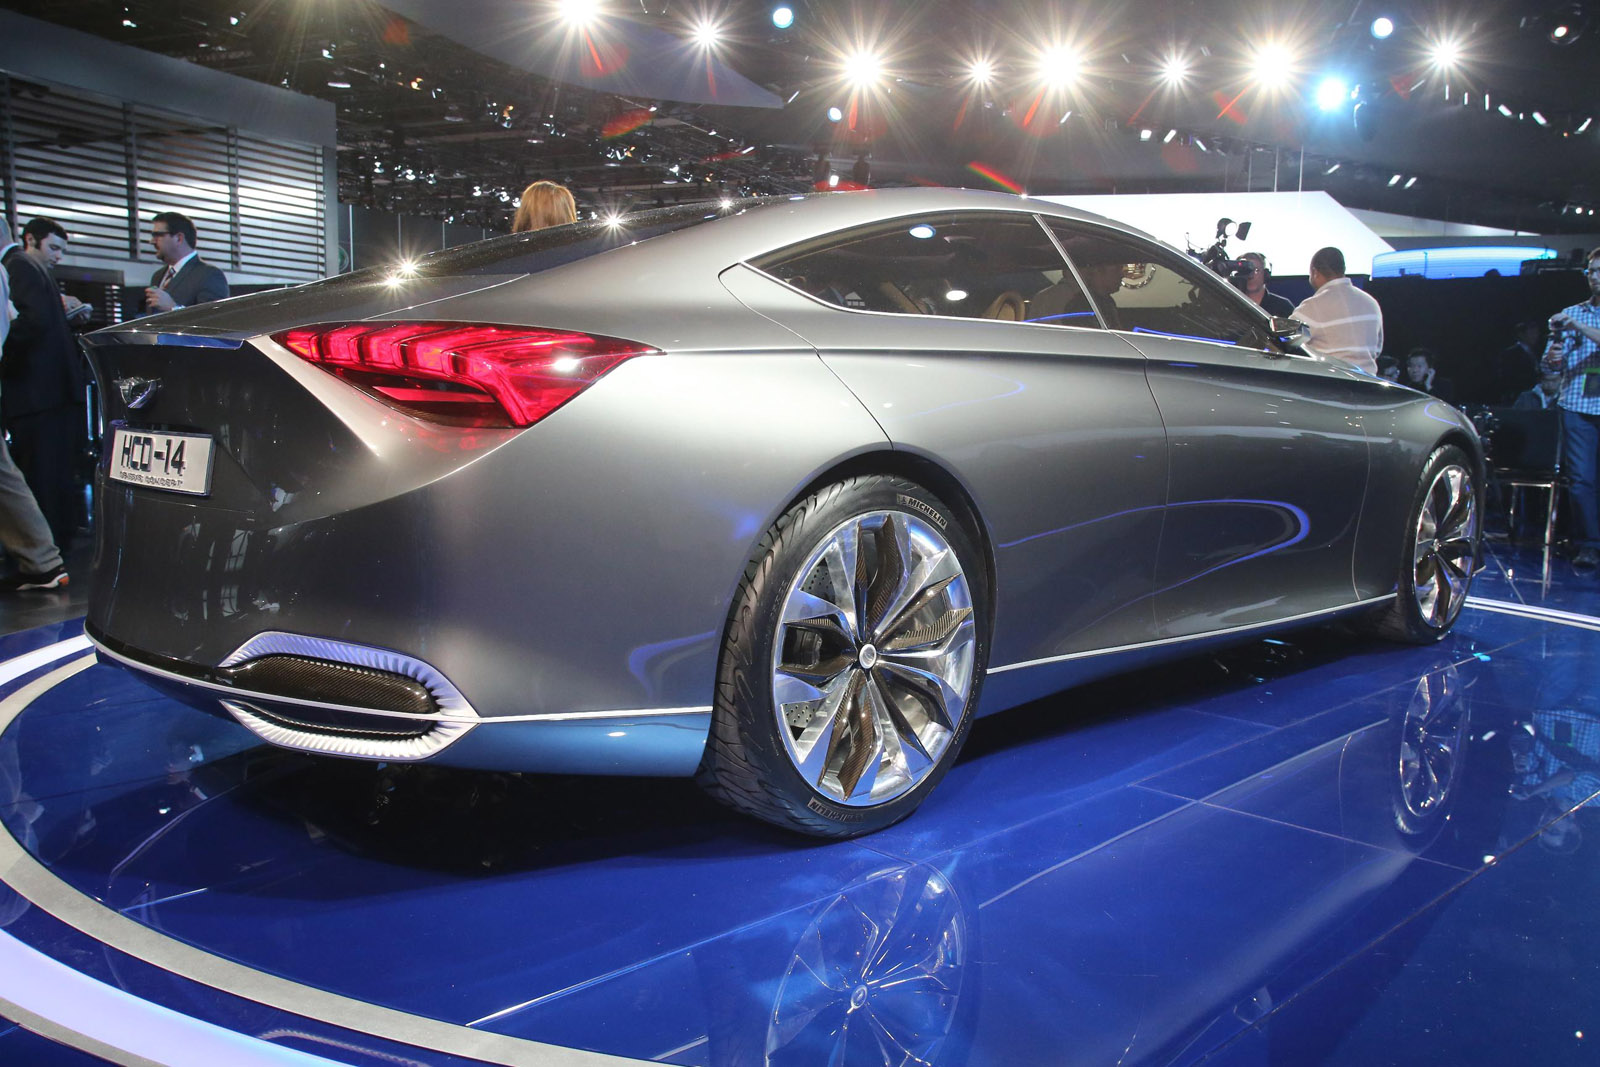 2019 Hyundai HCD 6 Concept | Car Photos Catalog 2018